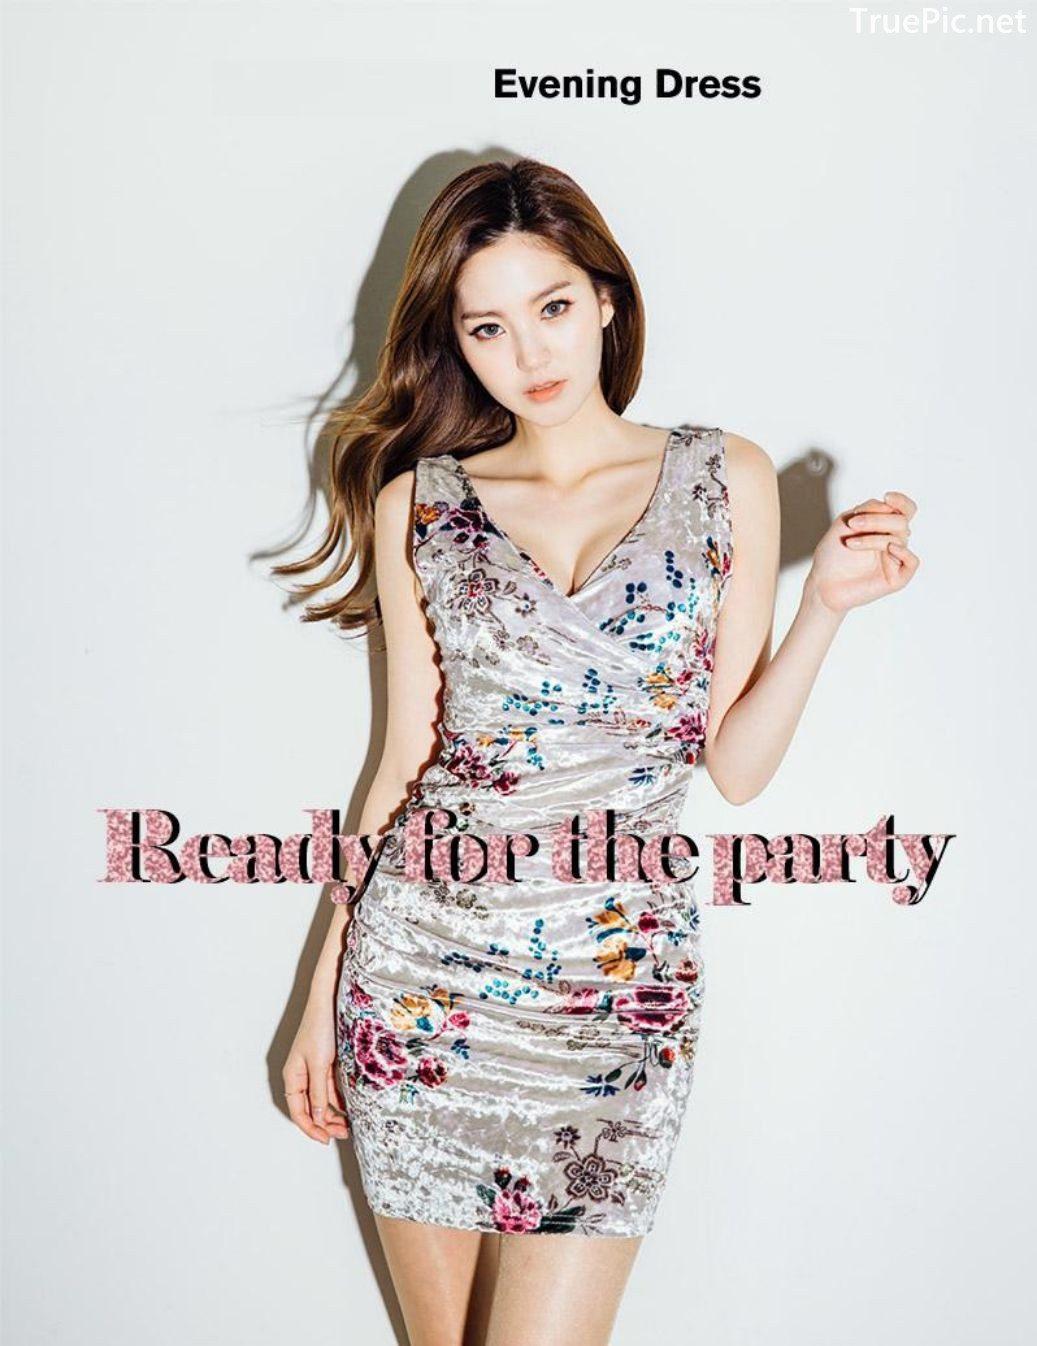 Image-Korean-Fashion-Model-Lee-Chae-Eun-Ready-For-The-Party-Evening-Wear-TruePic.net- Picture-7